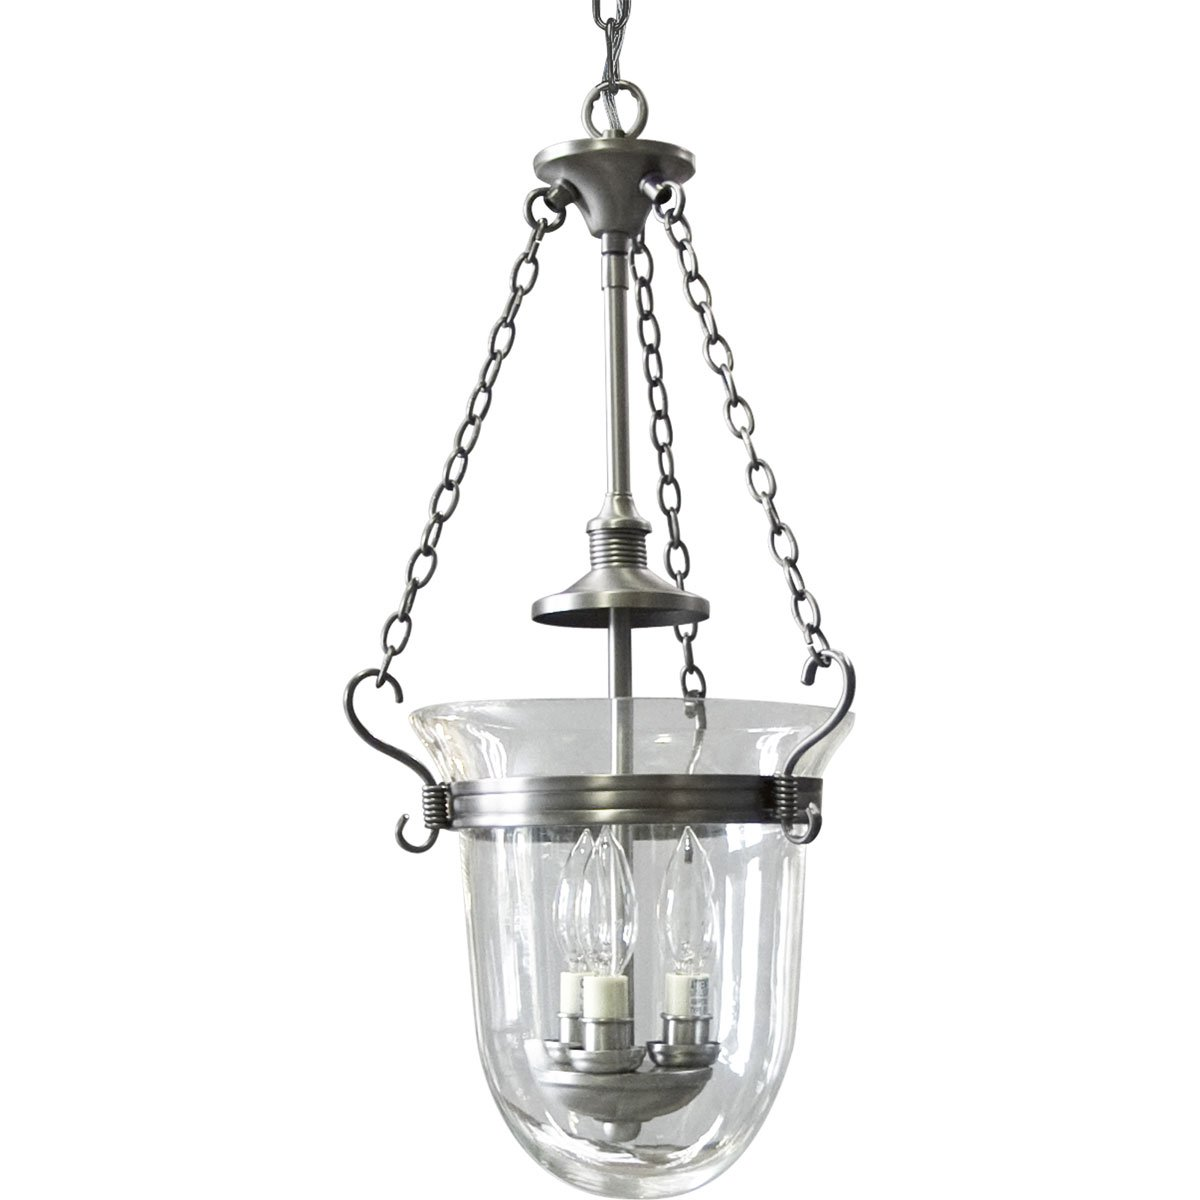 Progress lighting p3617 81 3 light inverted foyer with clear progress lighting p3617 81 3 light inverted foyer with clear hurrican glass shade antique nickel pendant lights amazon canada mozeypictures Choice Image